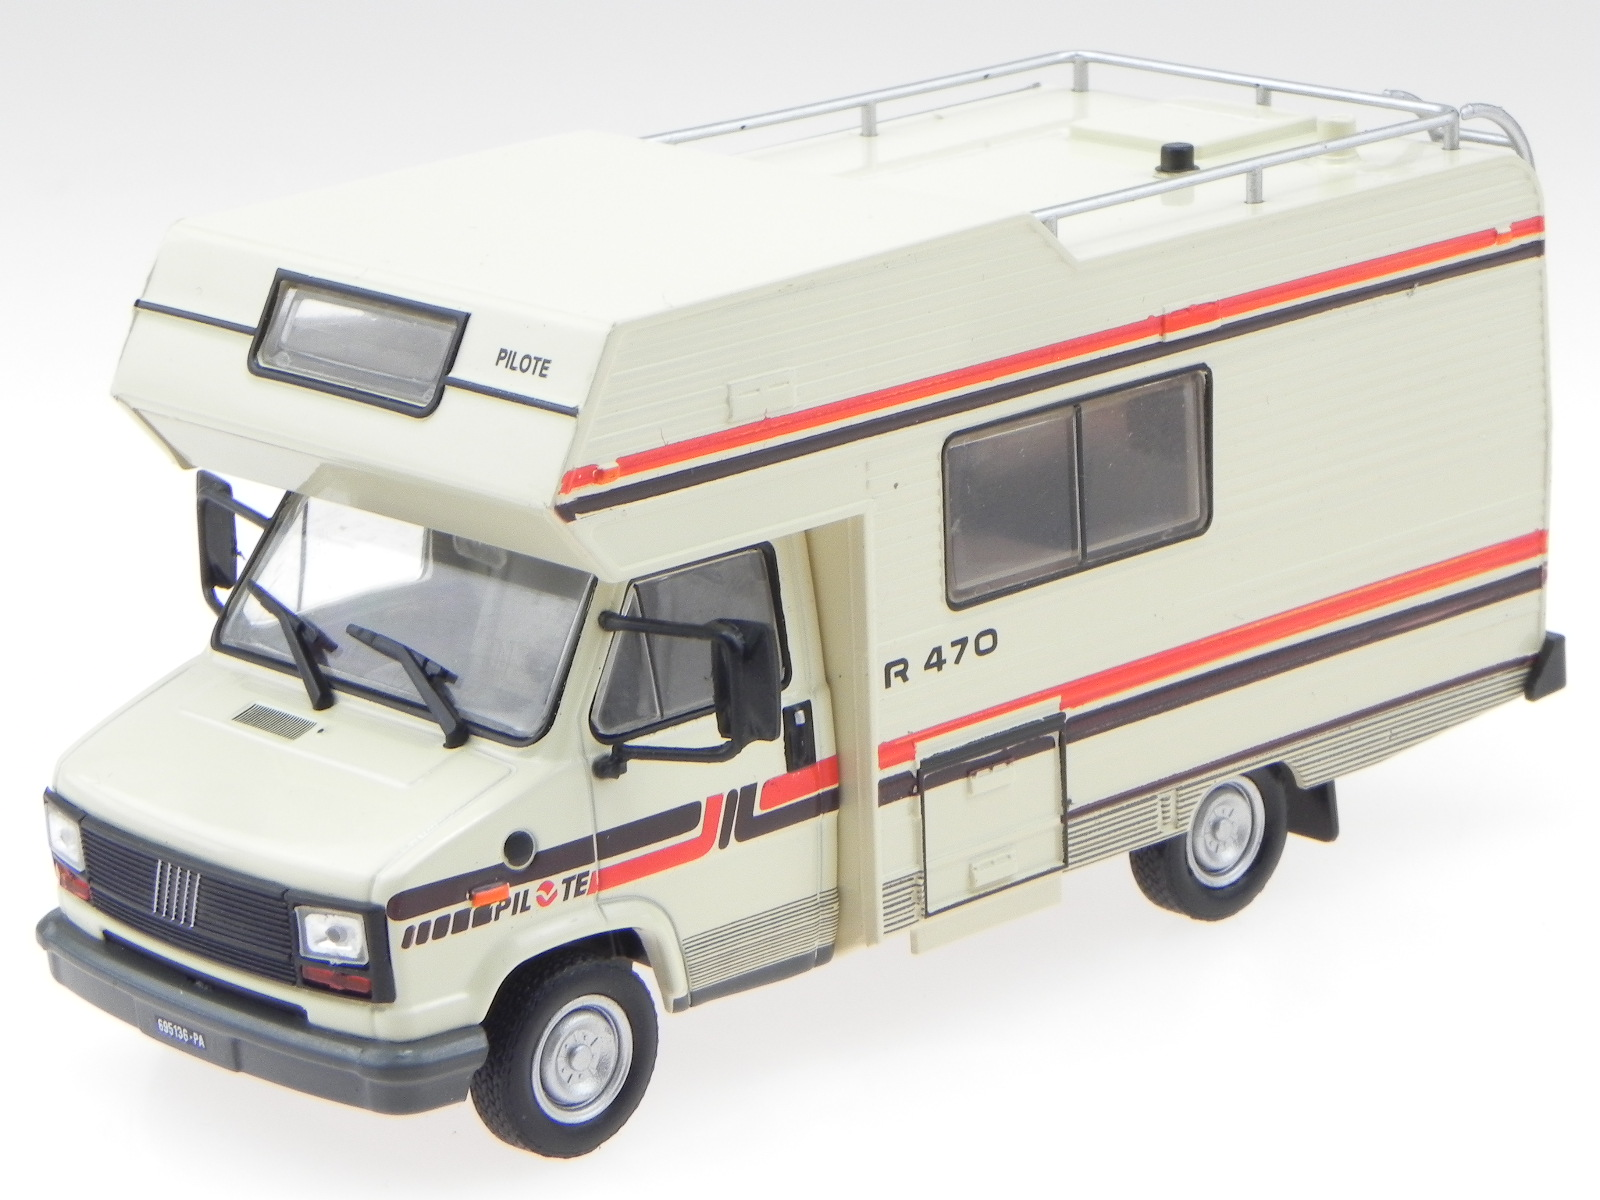 fiat ducato pilote r470 1984 camper wohnmobil modellauto. Black Bedroom Furniture Sets. Home Design Ideas